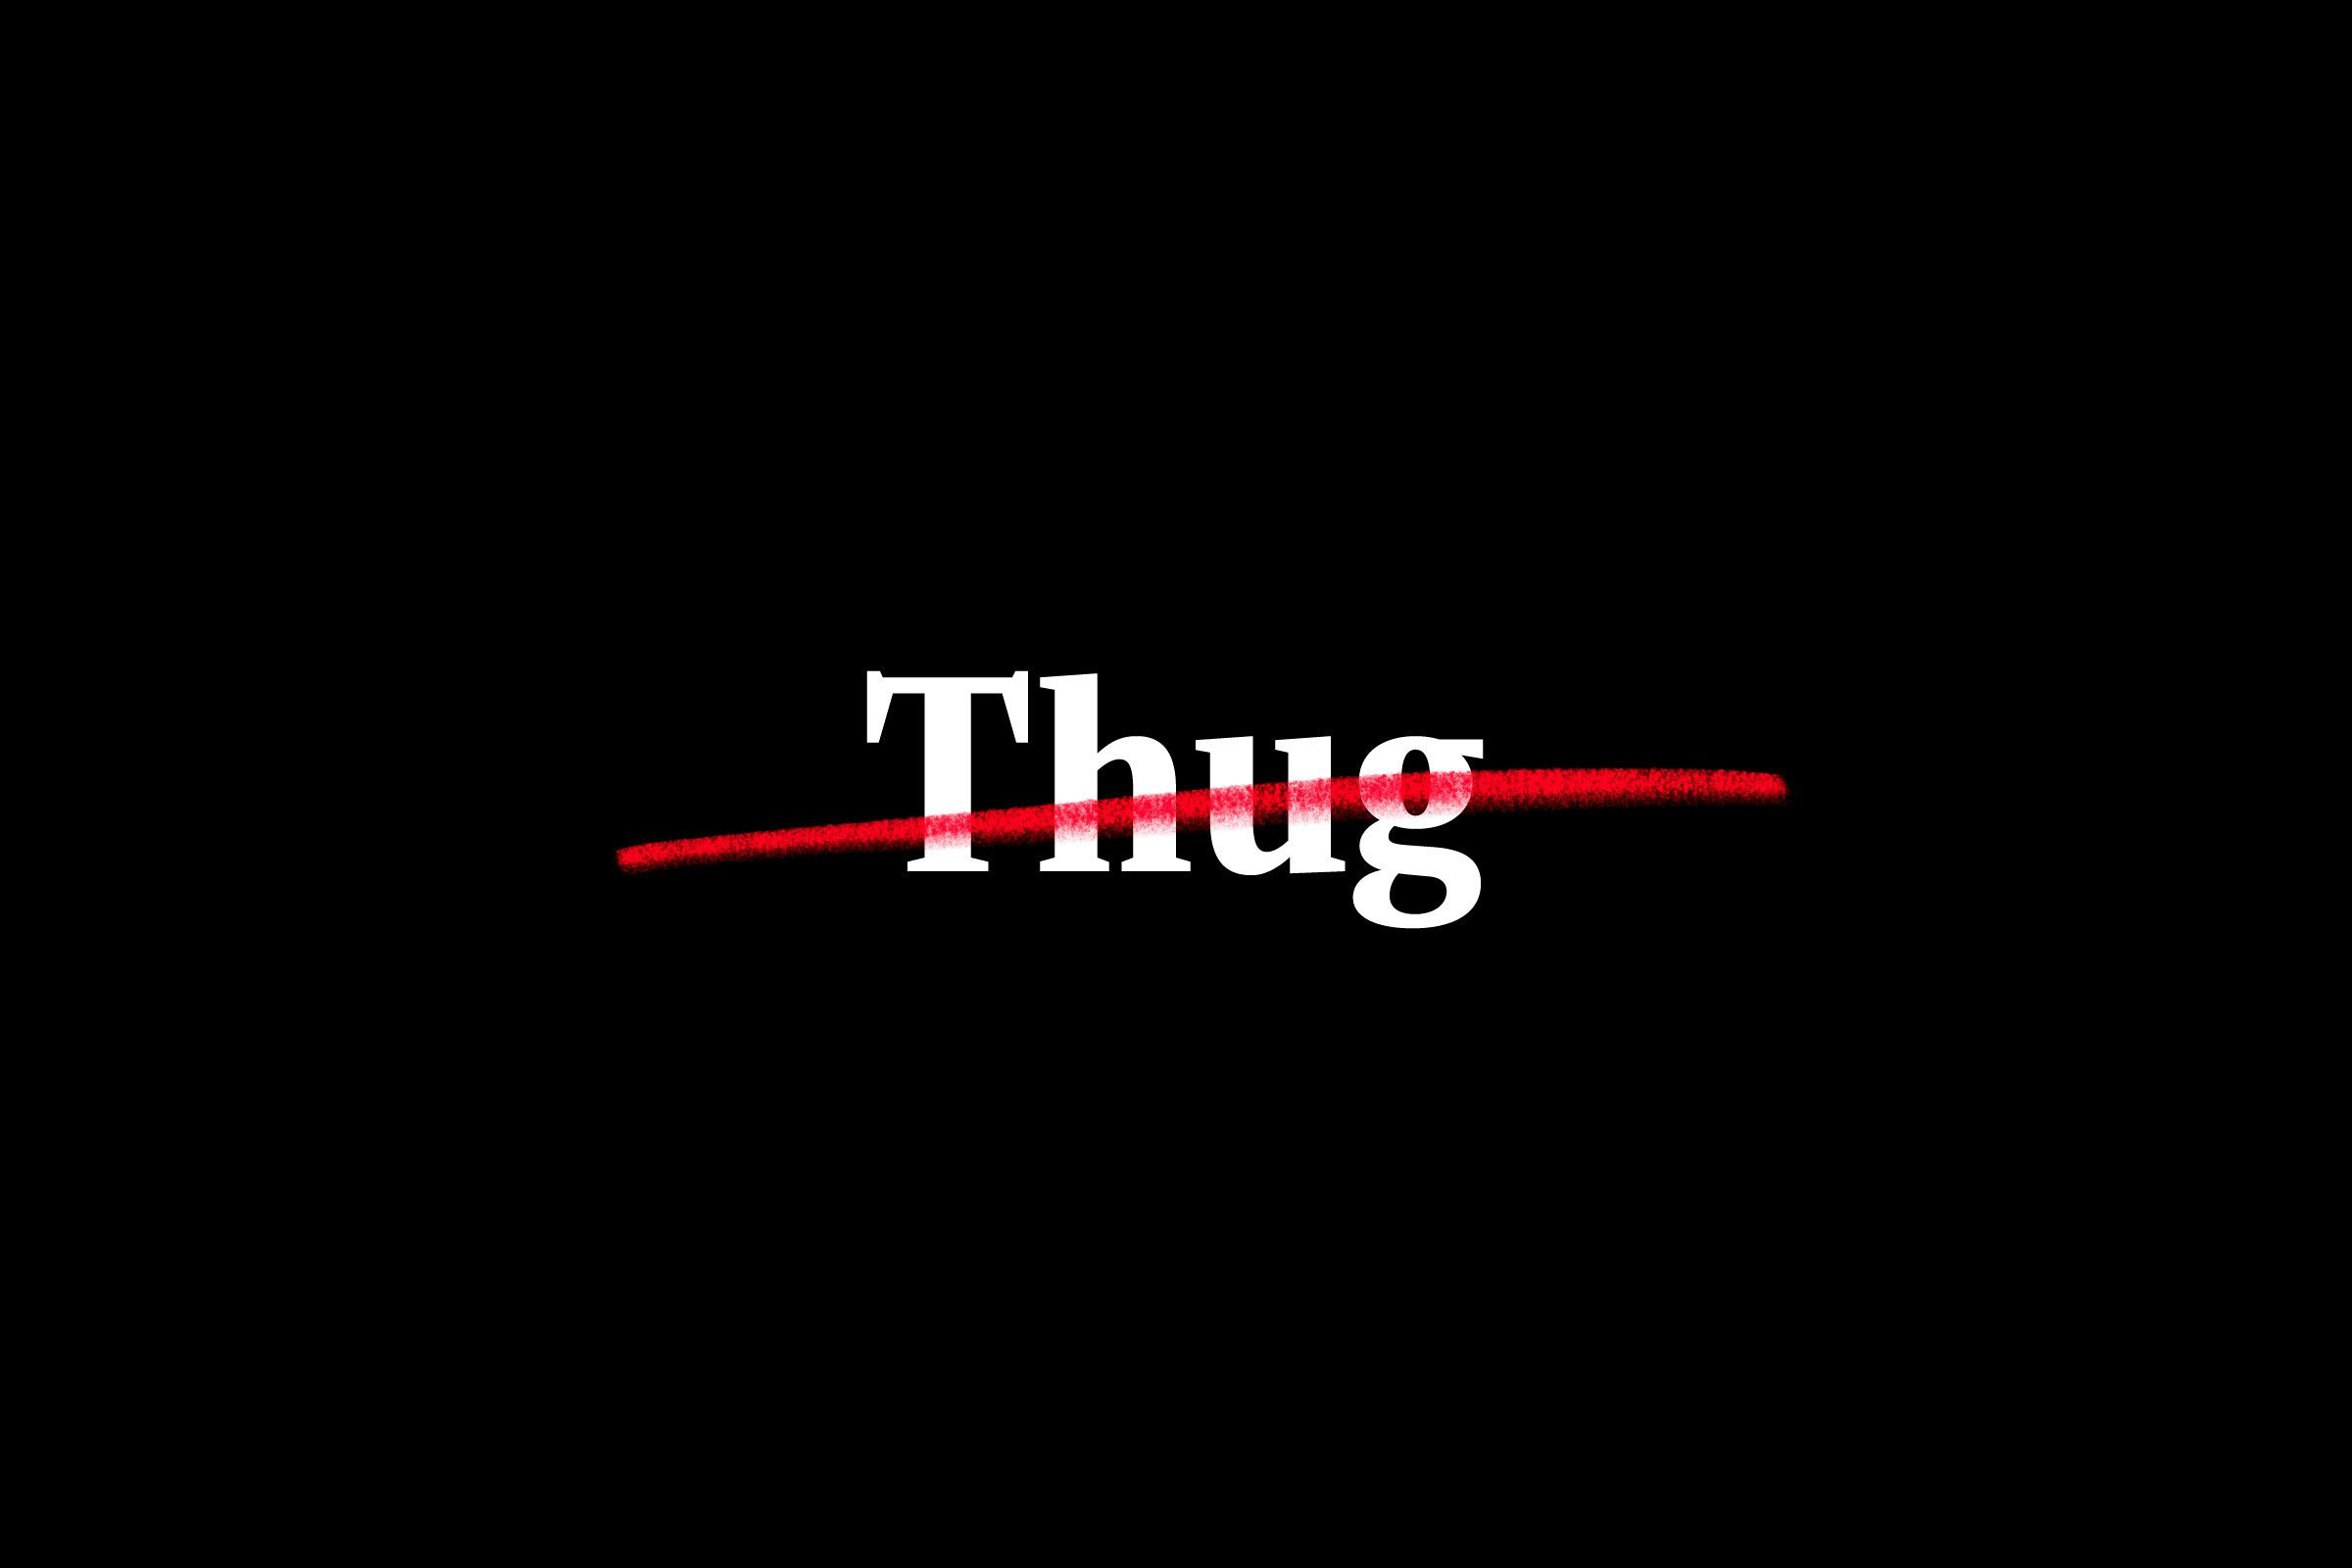 """thug"" crossed out"